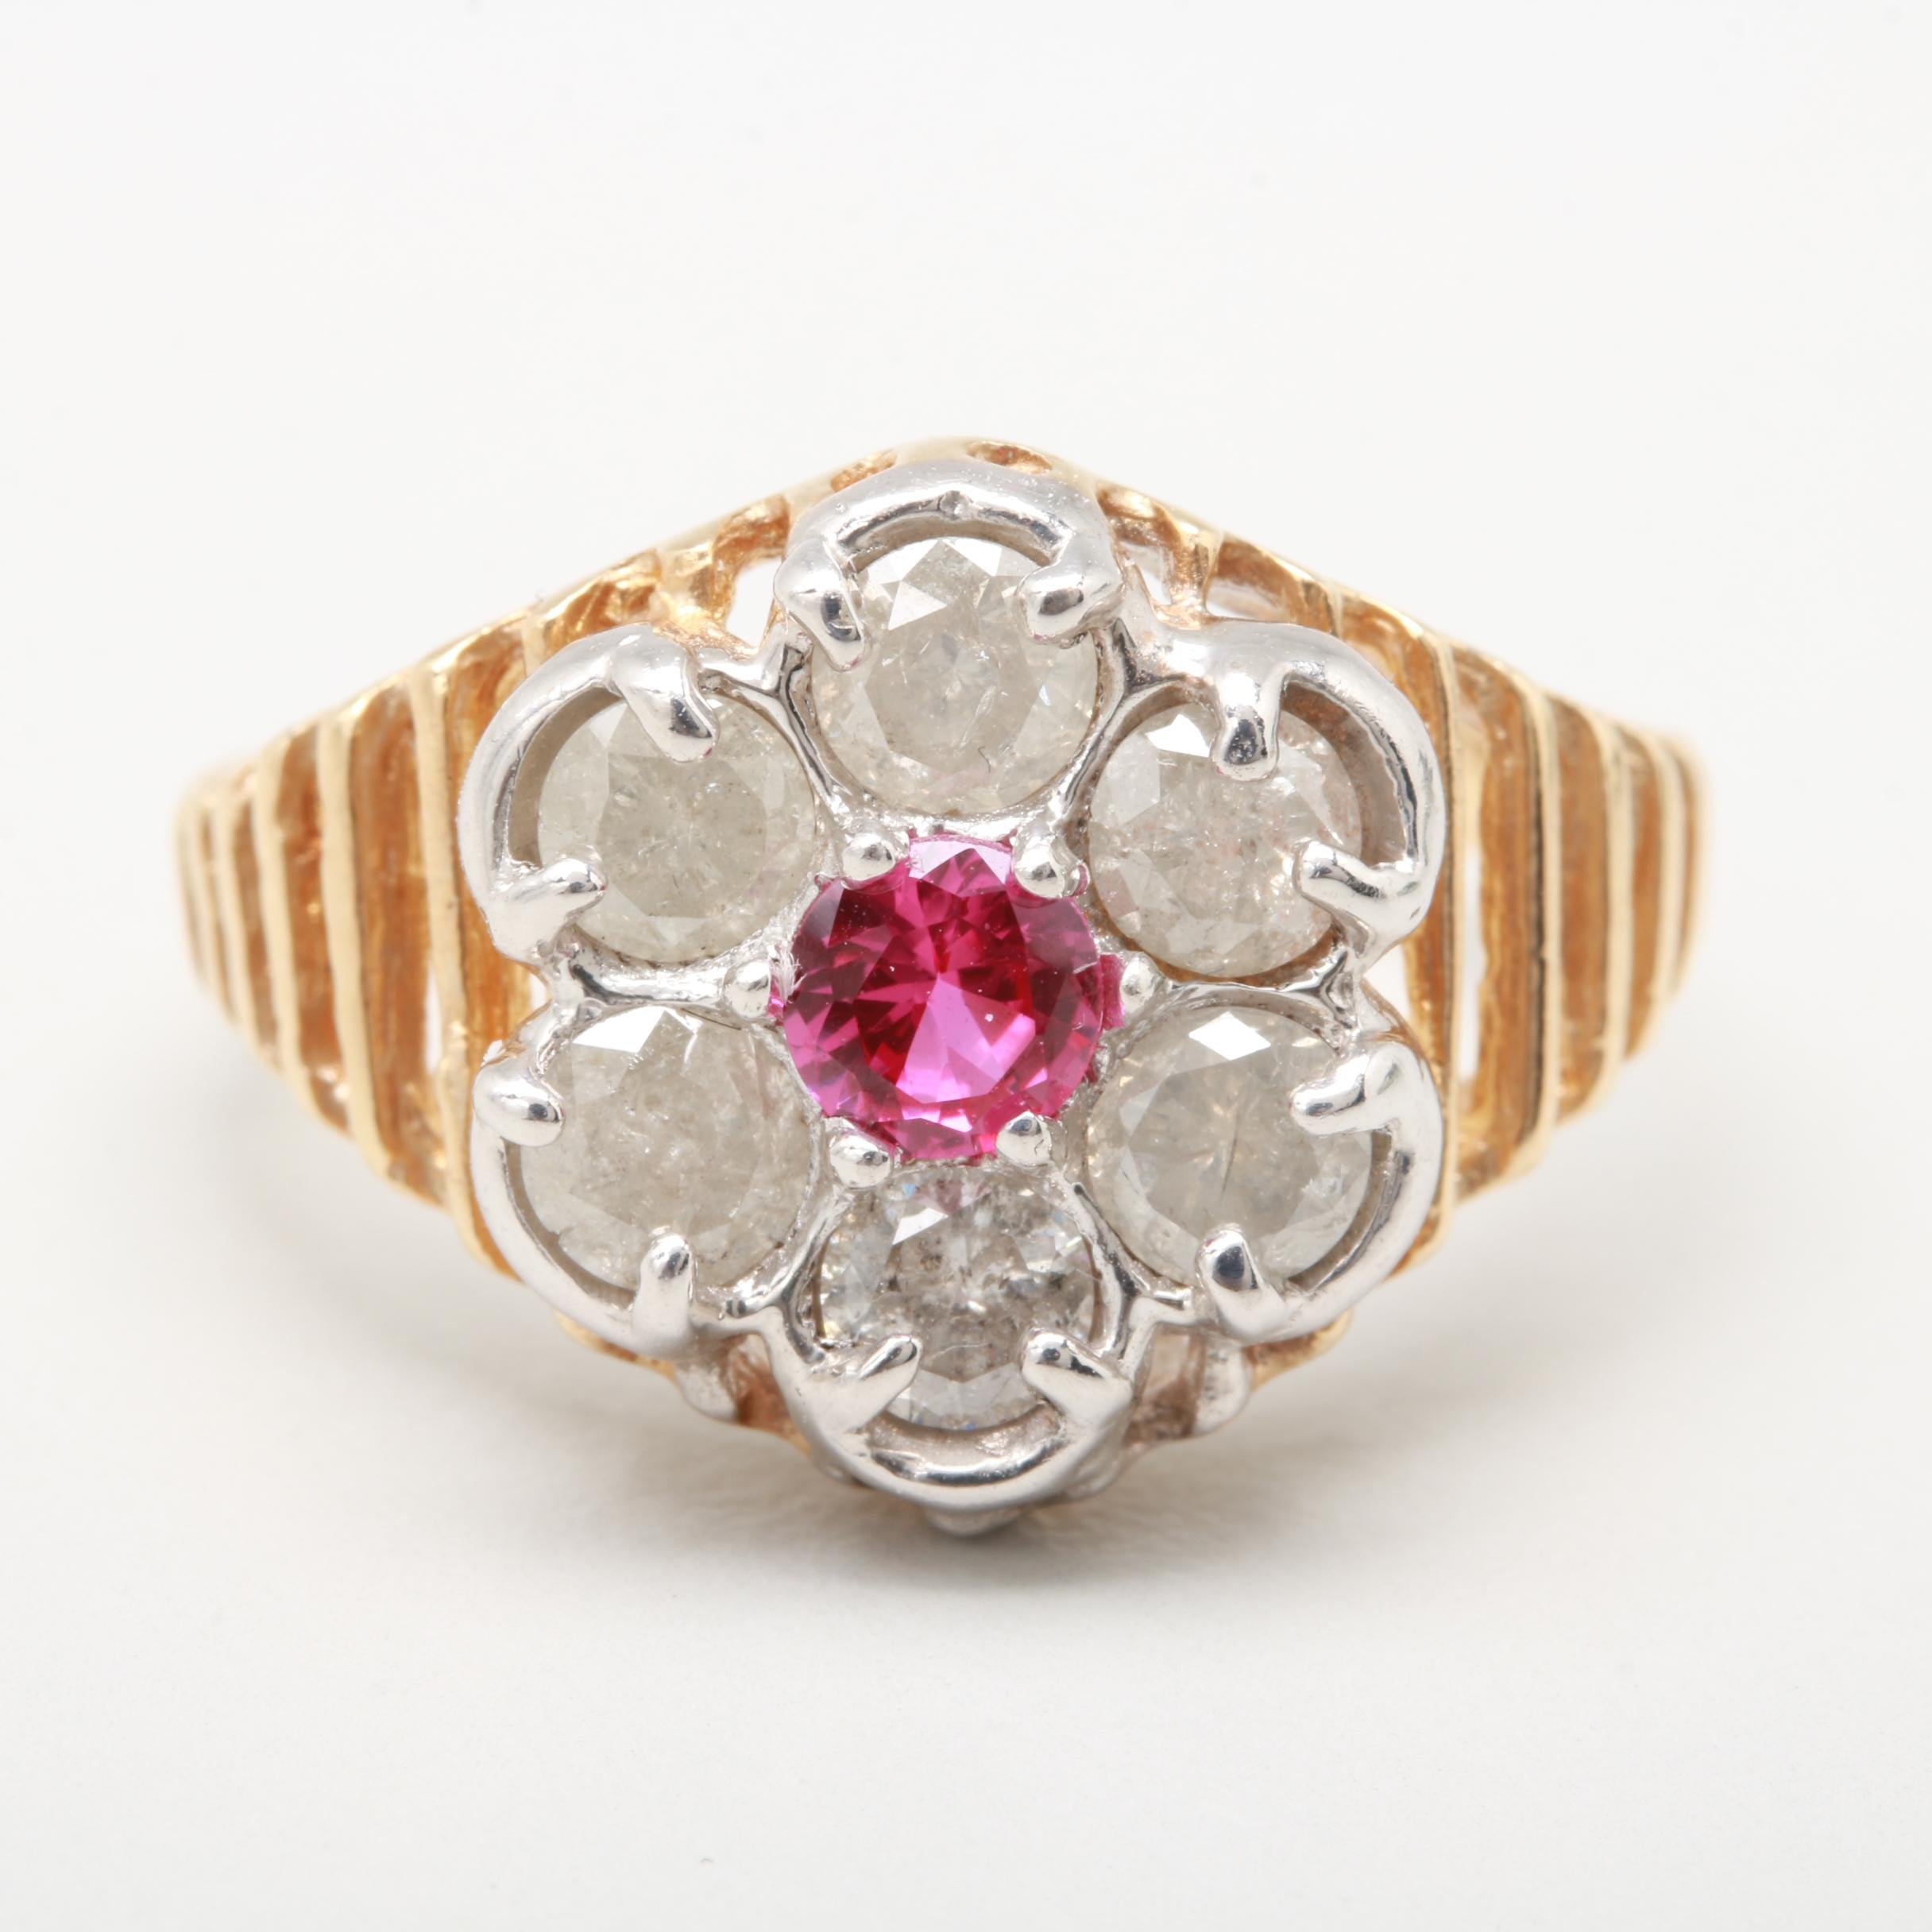 10K Yellow Gold Synthetic Ruby and 1.08 CTW Diamond Floral Ring